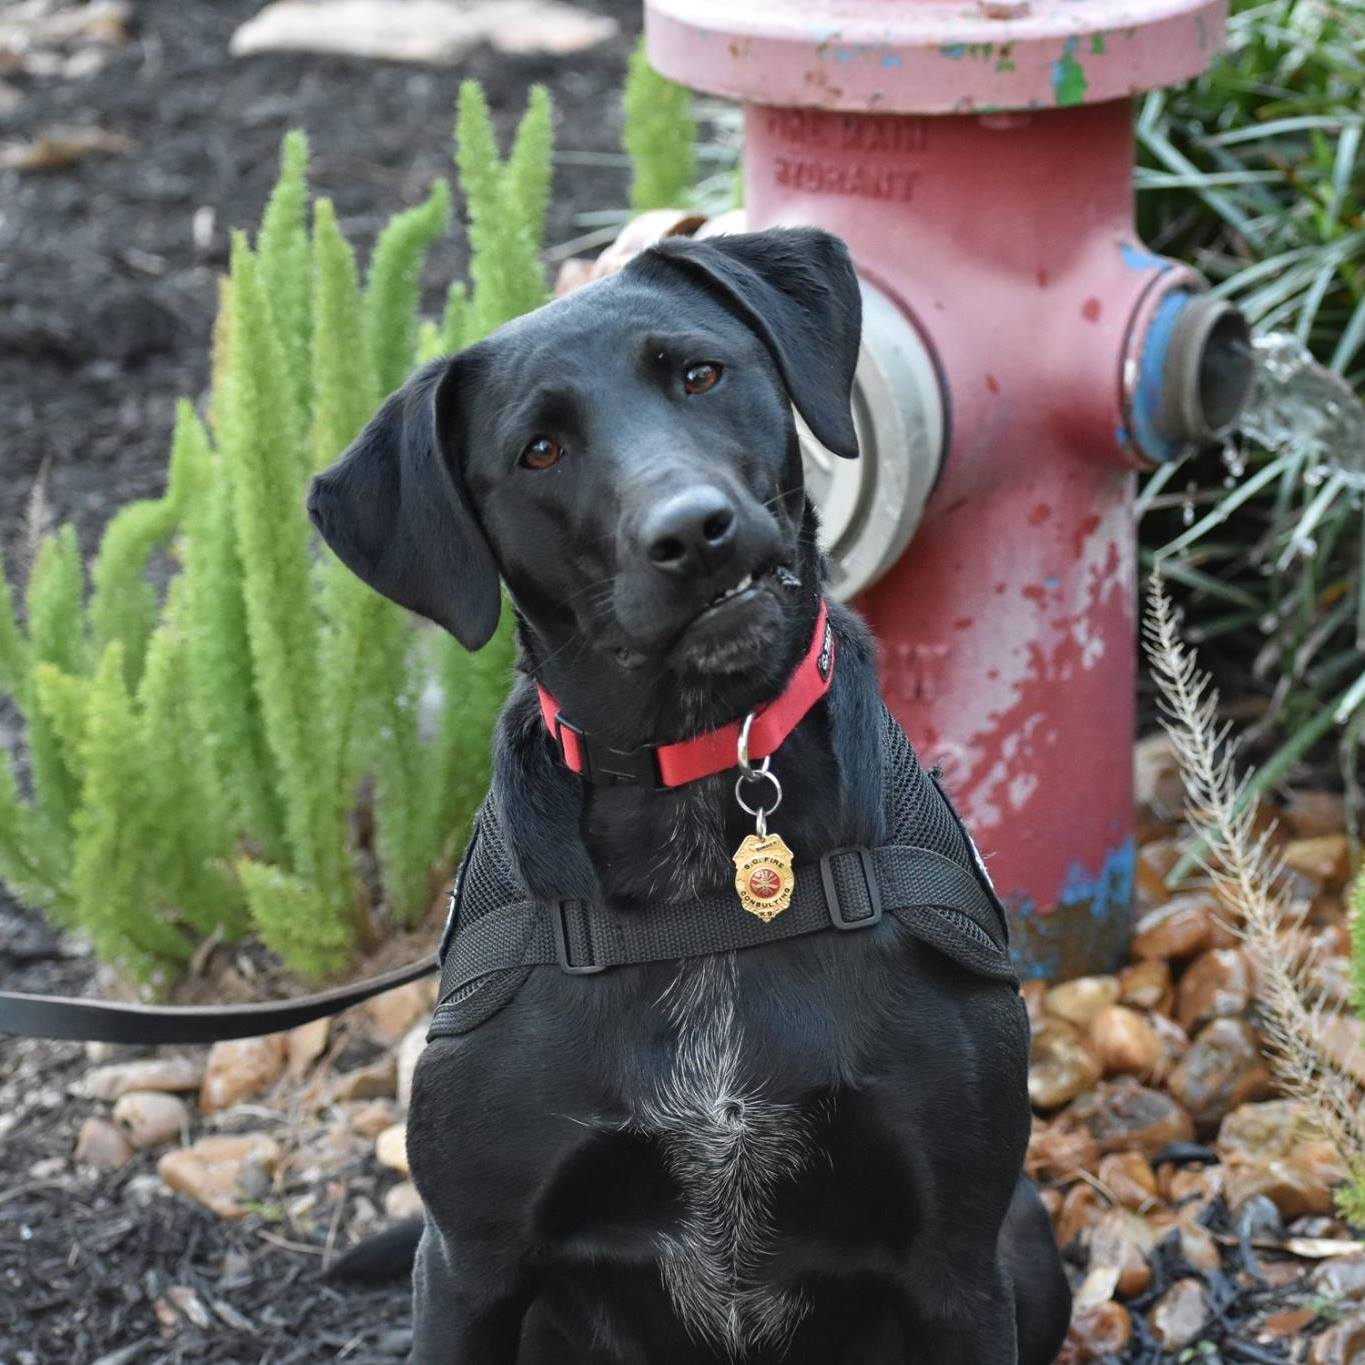 "Fire K9 ""Cinder""  ""Cinder"" is a certified Fire Accelerant Detection K9  Breed: Australian/Labrador Mix, Female DOB: September 18, 2015 Weight: 49 lbs Handler: Fire Investigator  Steve Chapman  Certified through  Firek9.org  & Canine Accelerant Detection Association  cadafiredogs.com/home  Trained by Lisa Caughlin &  Graduated from the Canine Academy  Training Center, Leander, Texas 2016  Cinder is trained to detect many types of ignitable liquids such as gasoline, kerosene, lighter fluids, diesel fuel and many more. An accelerant detection K-9 is a tool used to assist the fire investigator to determine if an ignitable liquid may have been used to start a fire and commit arson. When the K-9 alerts a sample is collected at that location and sent to a laboratory for analysis and confirmation. Her sense of smell is estimated to be 100,000 times more sensitive than a human. Cinder is a private sector K-9 used by insurance companies to rule out fraud and arson."